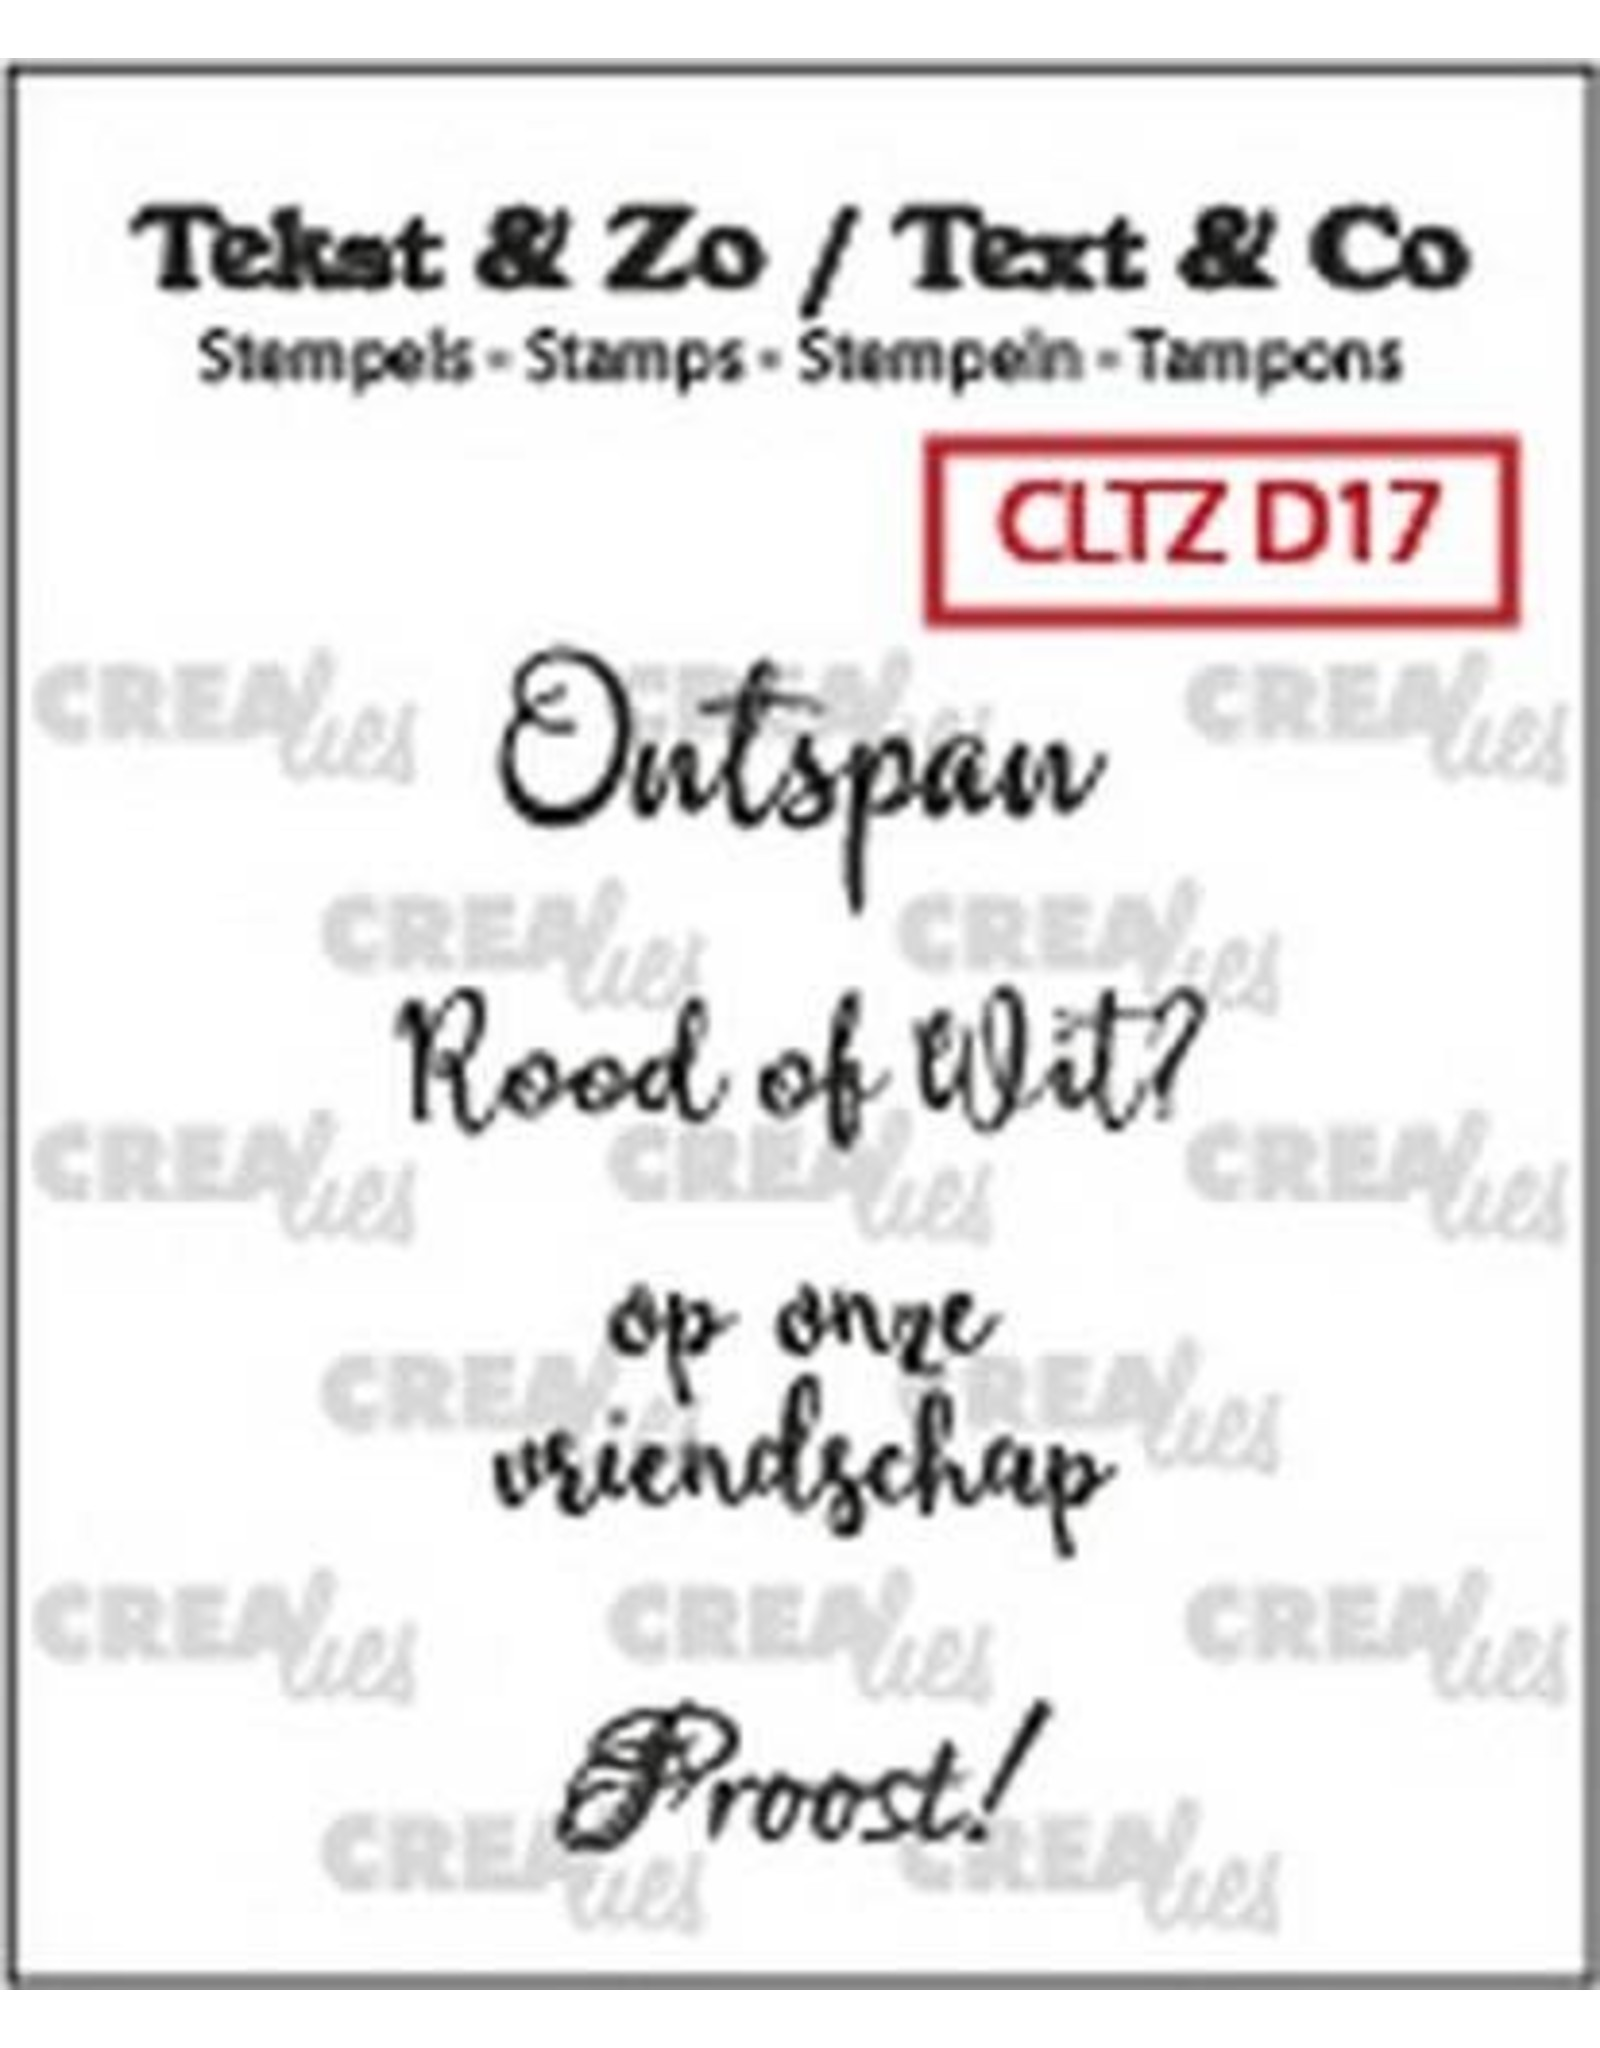 Crealies Clearstamp Tekst & Zo Wijn A (NL) CLTZD17 max. 28mm (